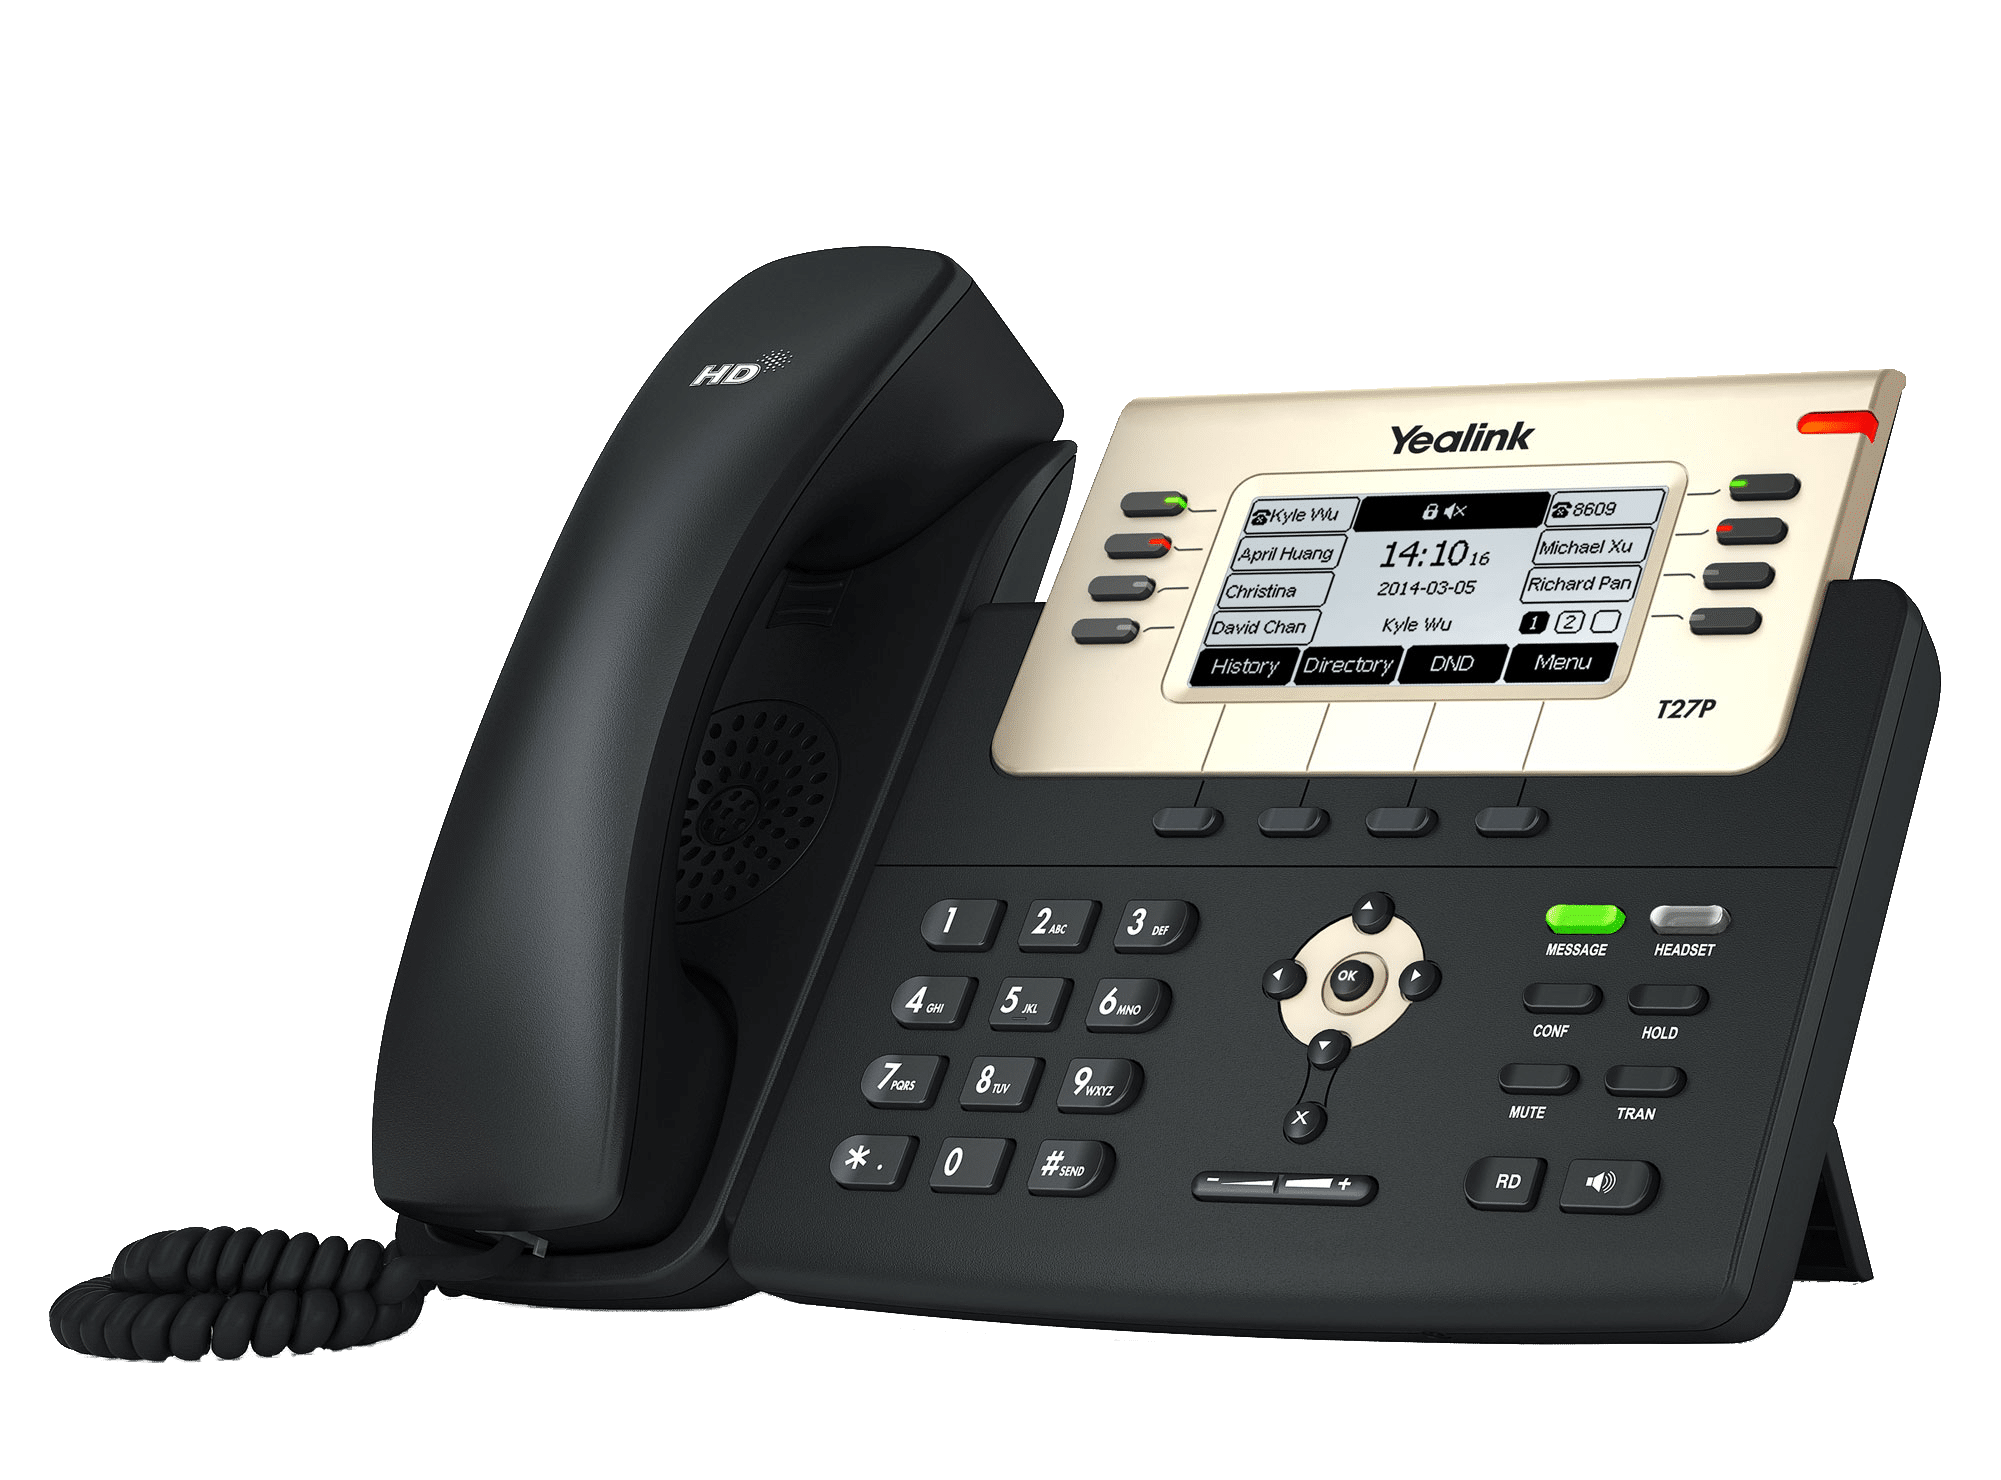 Png images free picture. Clipart phone ip phone